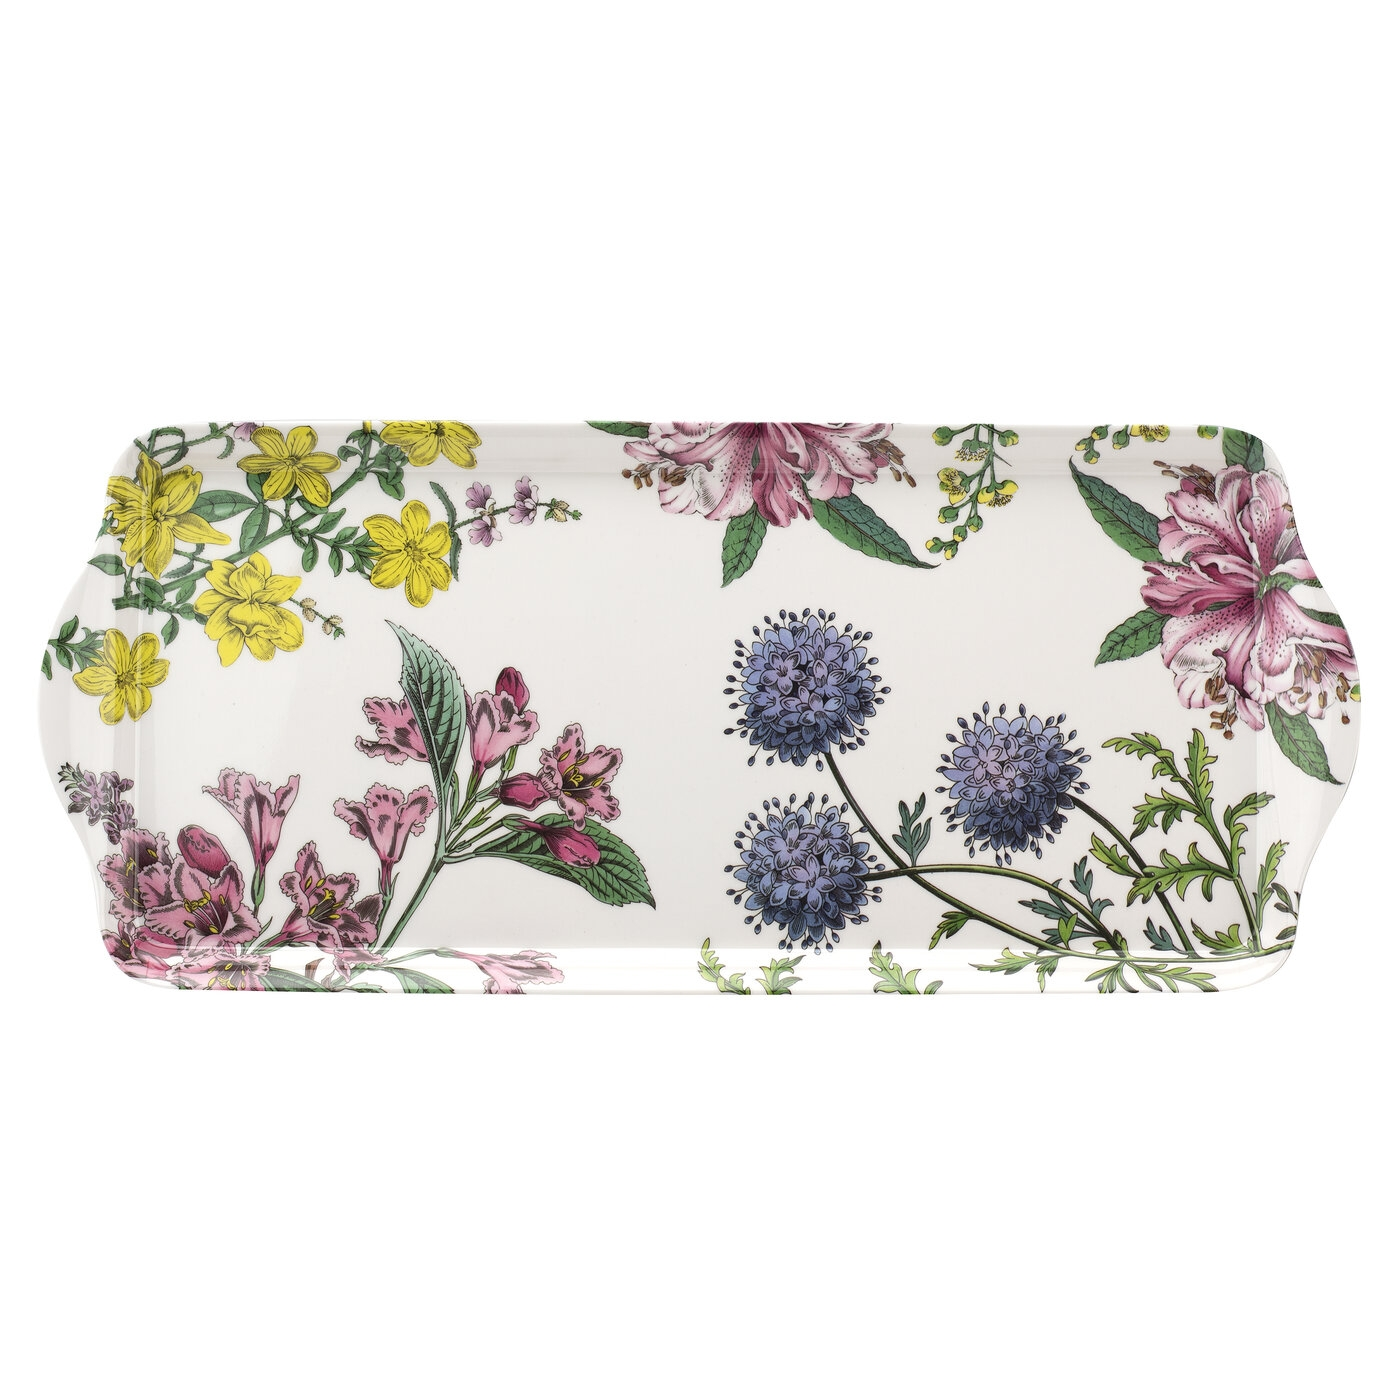 Pimpernel Stafford Blooms Sandwich Tray image number 0